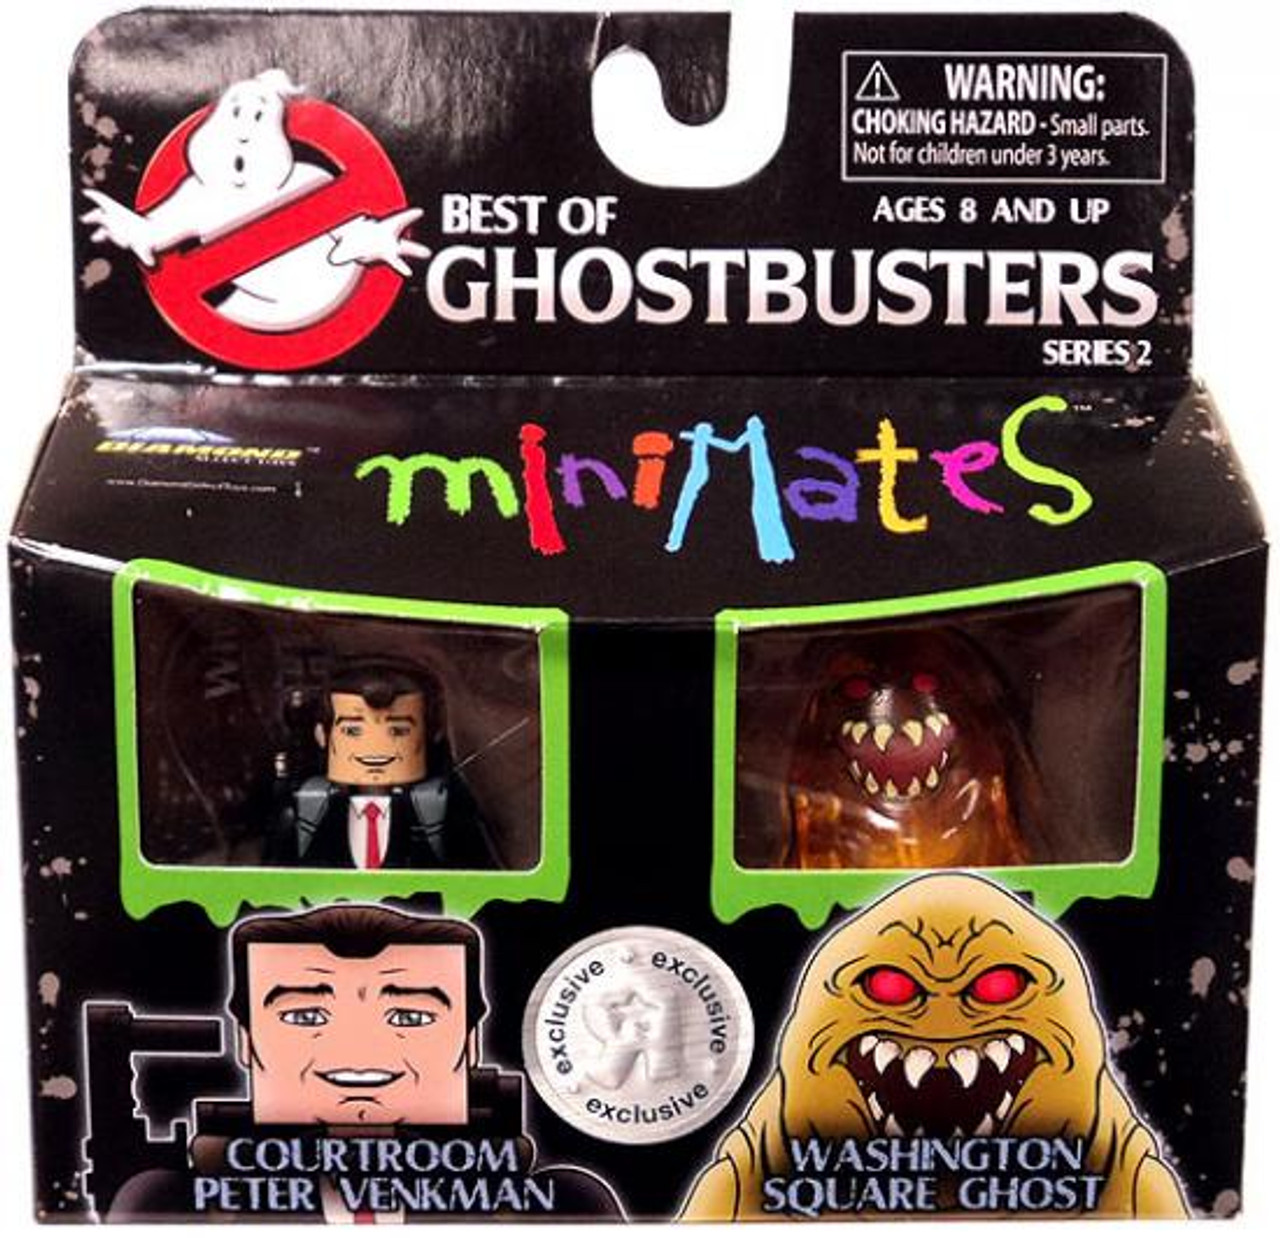 Ghostbusters Best of Minimates Series 2 Courtroom Peter Venkman & Washington Square Ghost Exclusive Minifigure 2-Pack